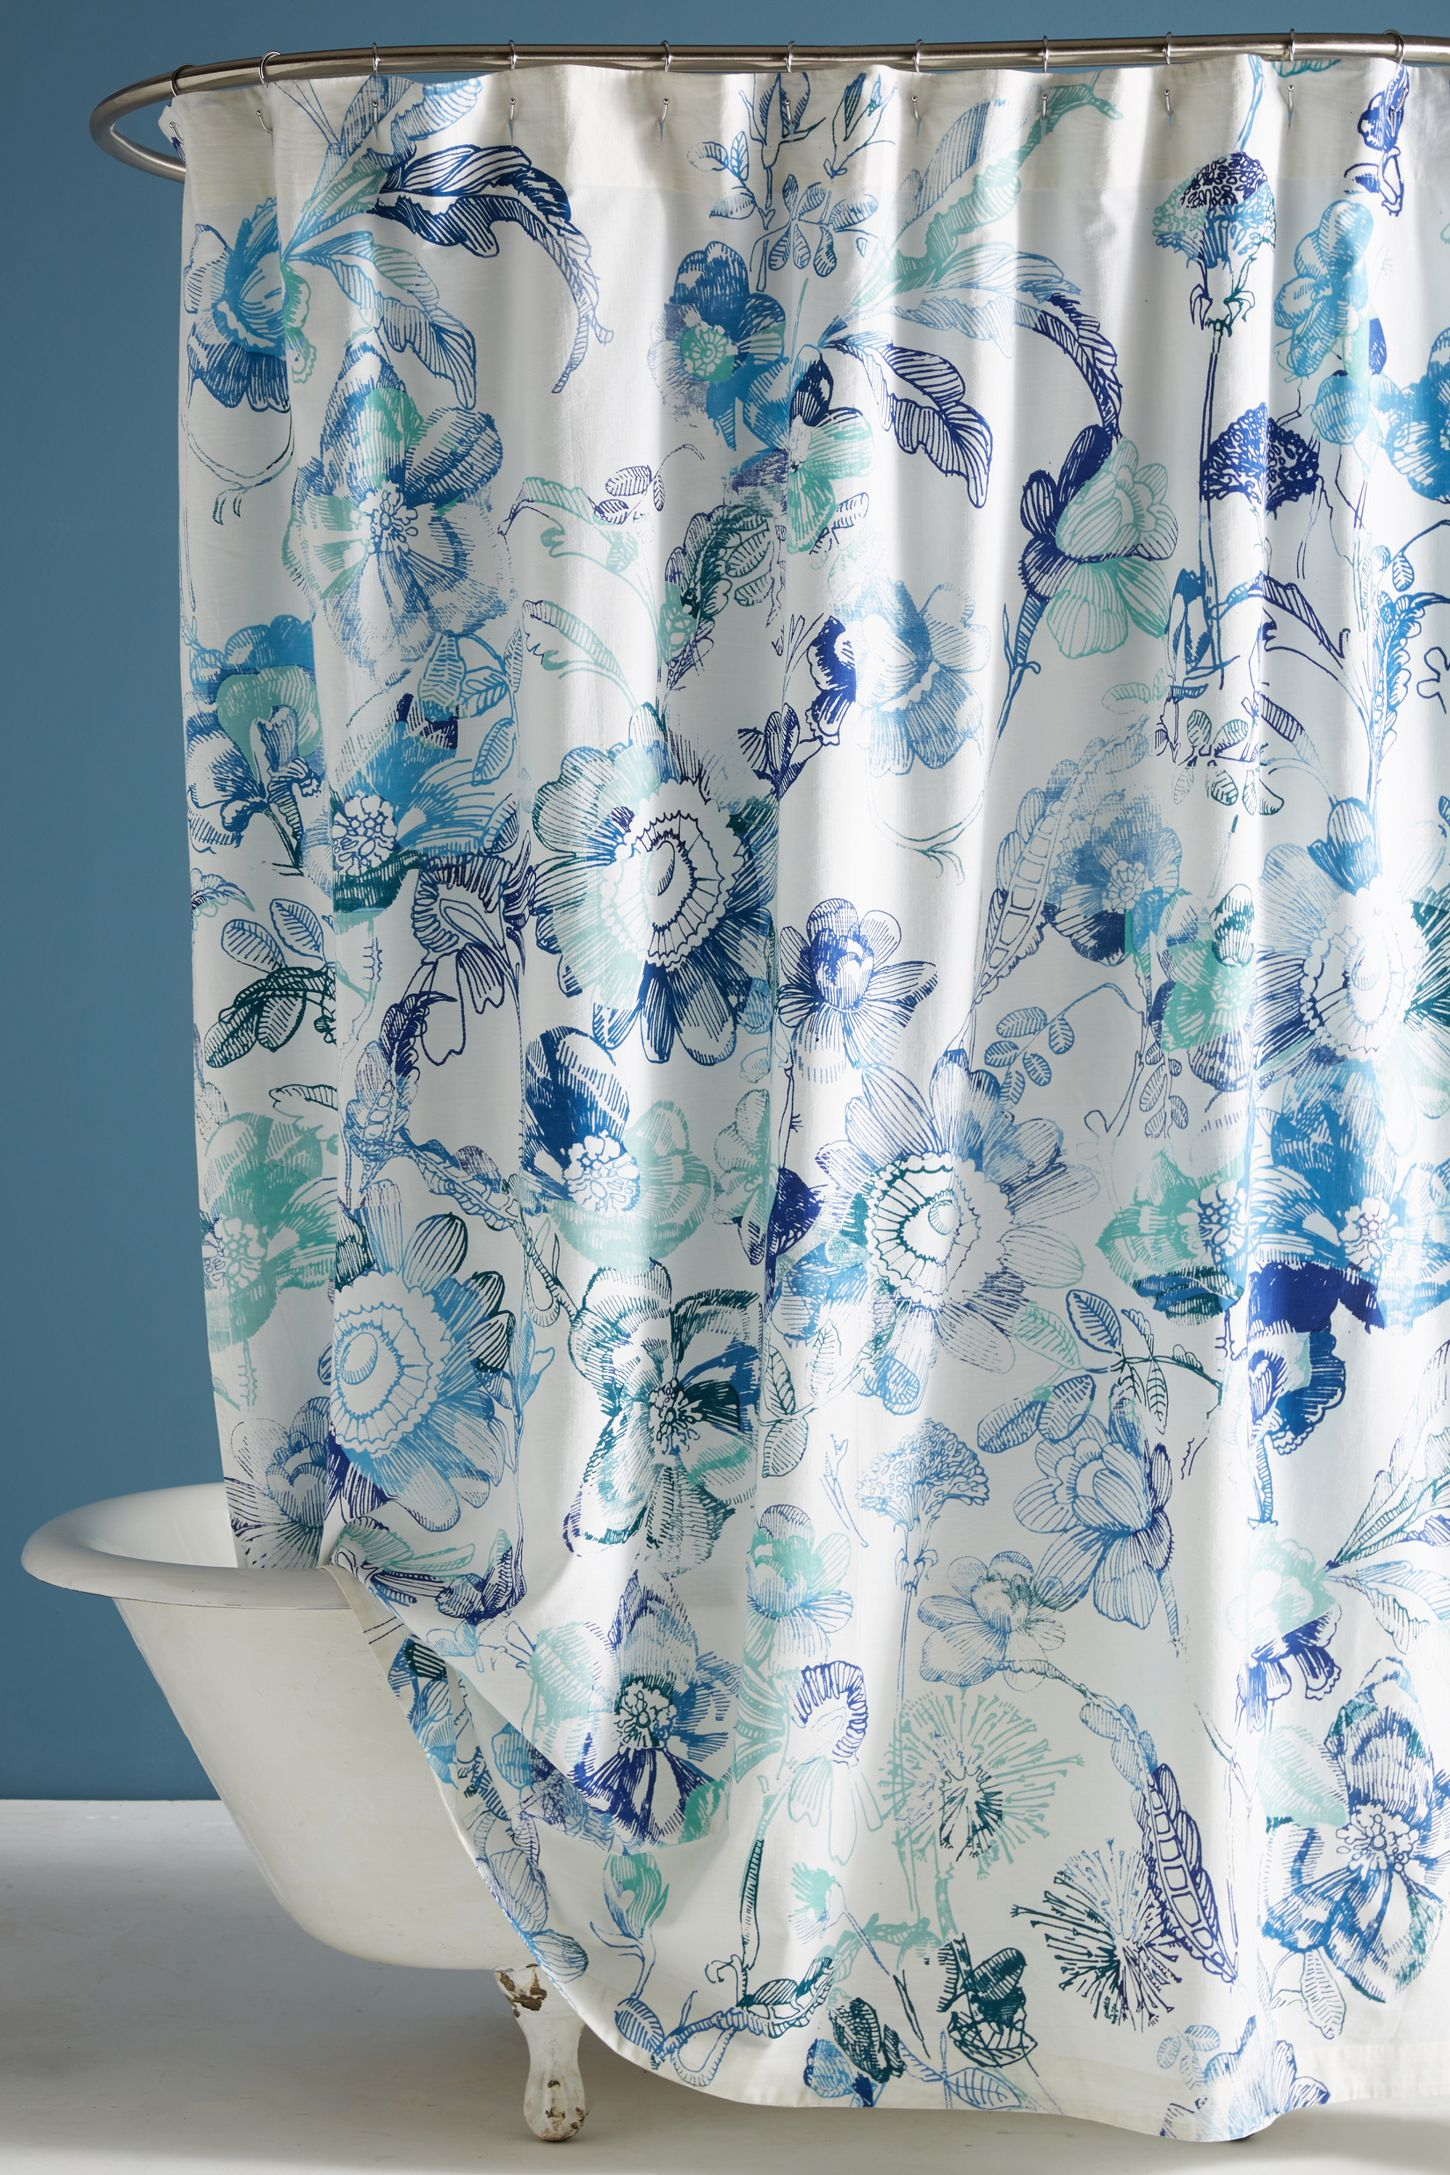 Bathroom shower curtains and matching accessories - Hariette Shower Curtain